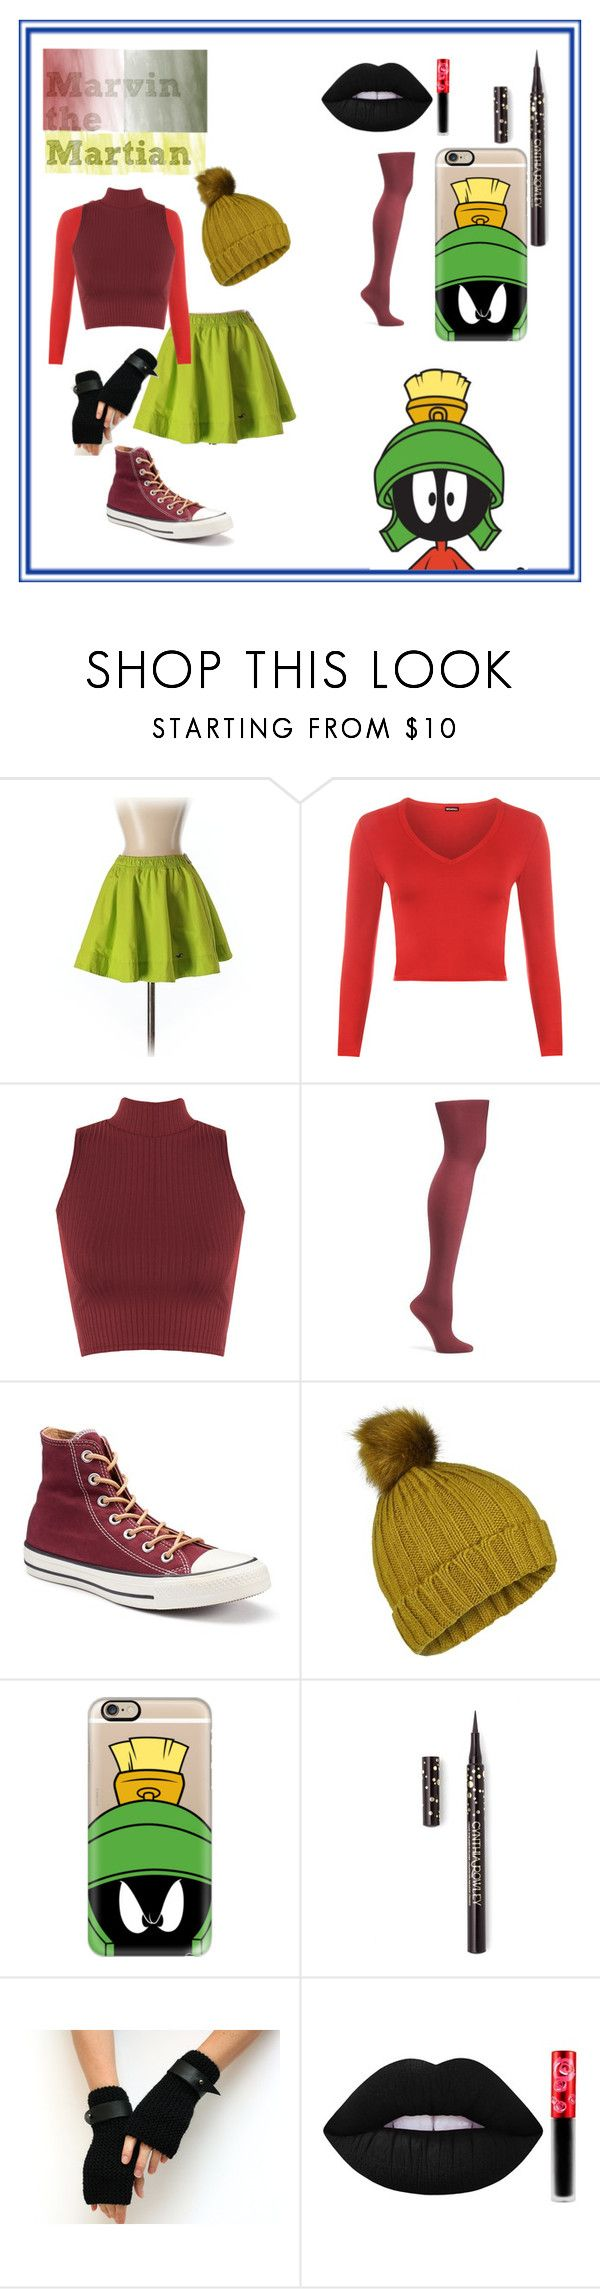 """Marvin the Martian"" by jmclarty on Polyvore featuring Hollister Co., WearAll, Old Navy, Converse, Miss Selfridge, Casetify, Cynthia Rowley, Lime Crime, looneytunes and marvinthemartian"